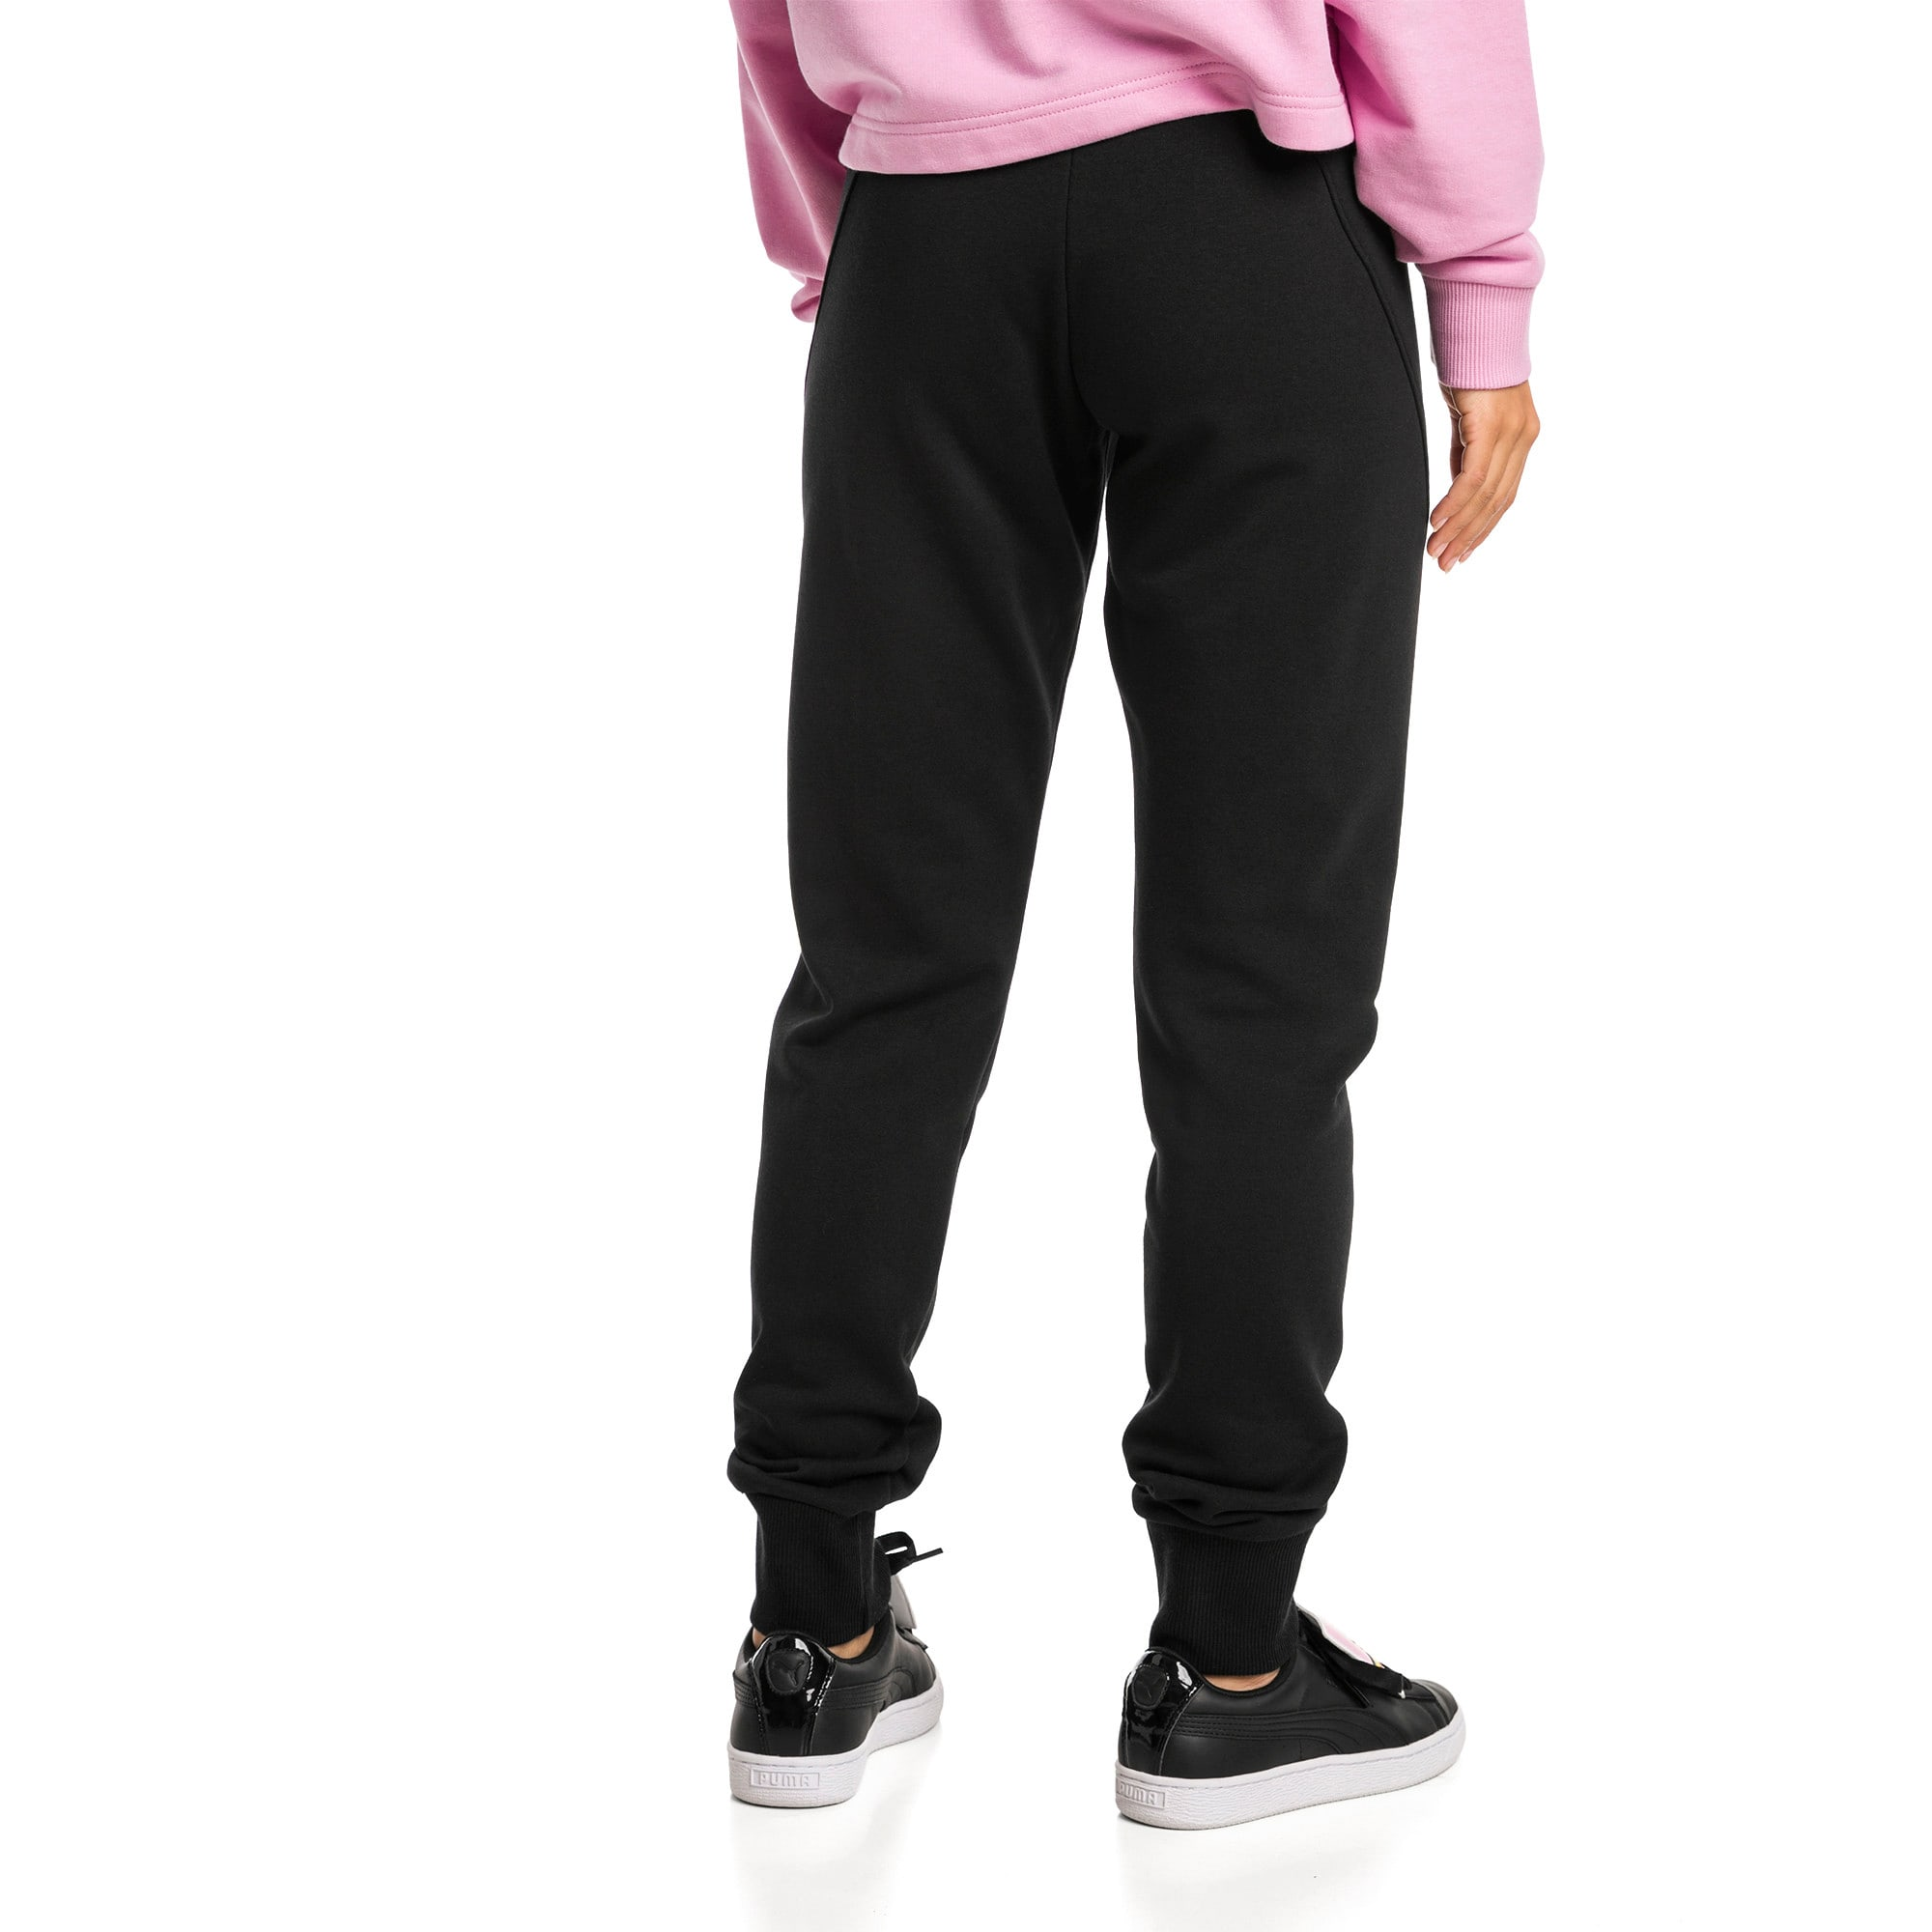 Thumbnail 2 of Trailblazer sweatpants voor dames, Puma Black, medium